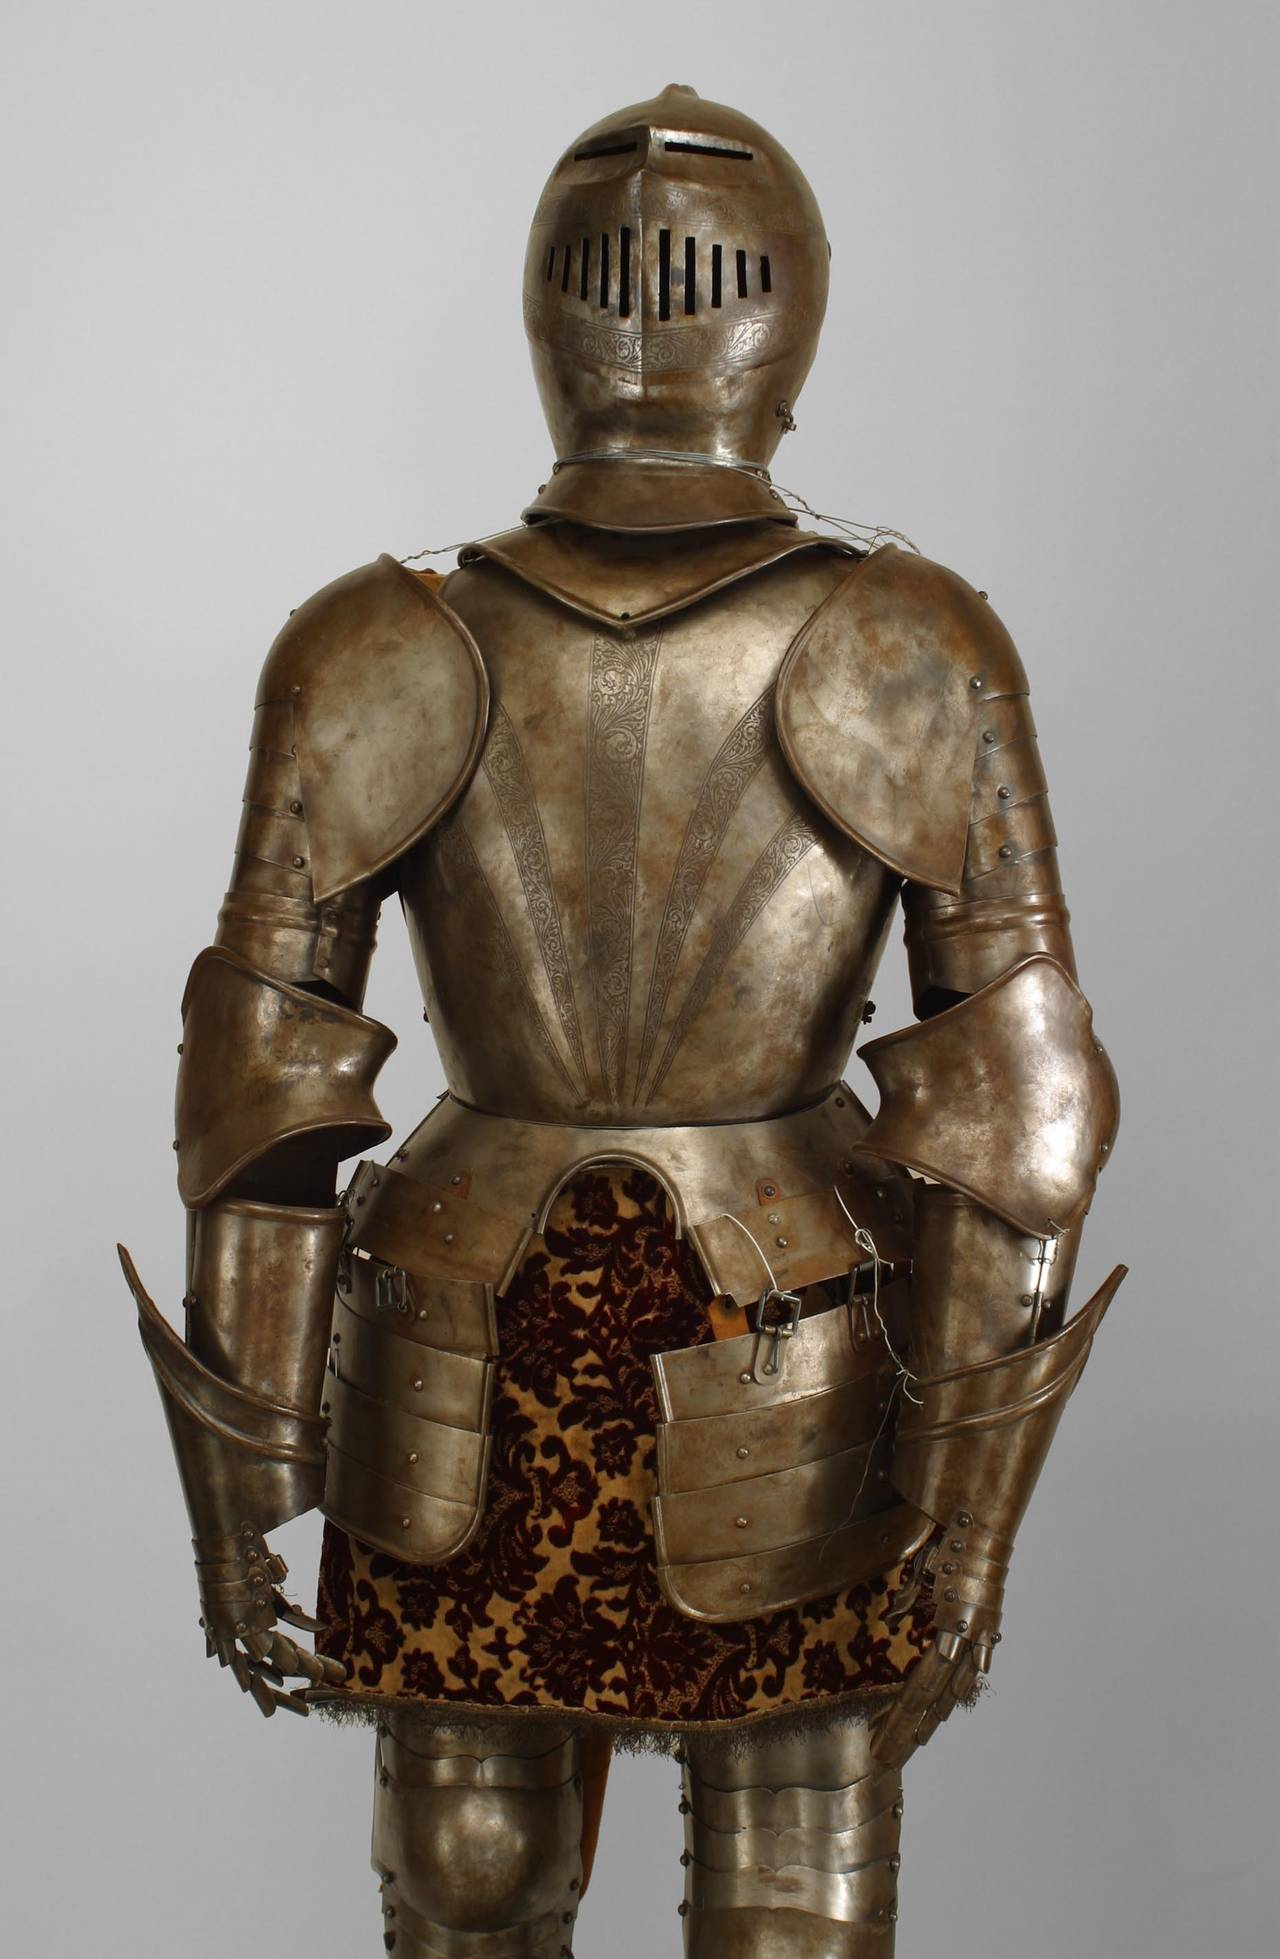 Italian Renaissance Style Etched Suit of Armor For Sale at